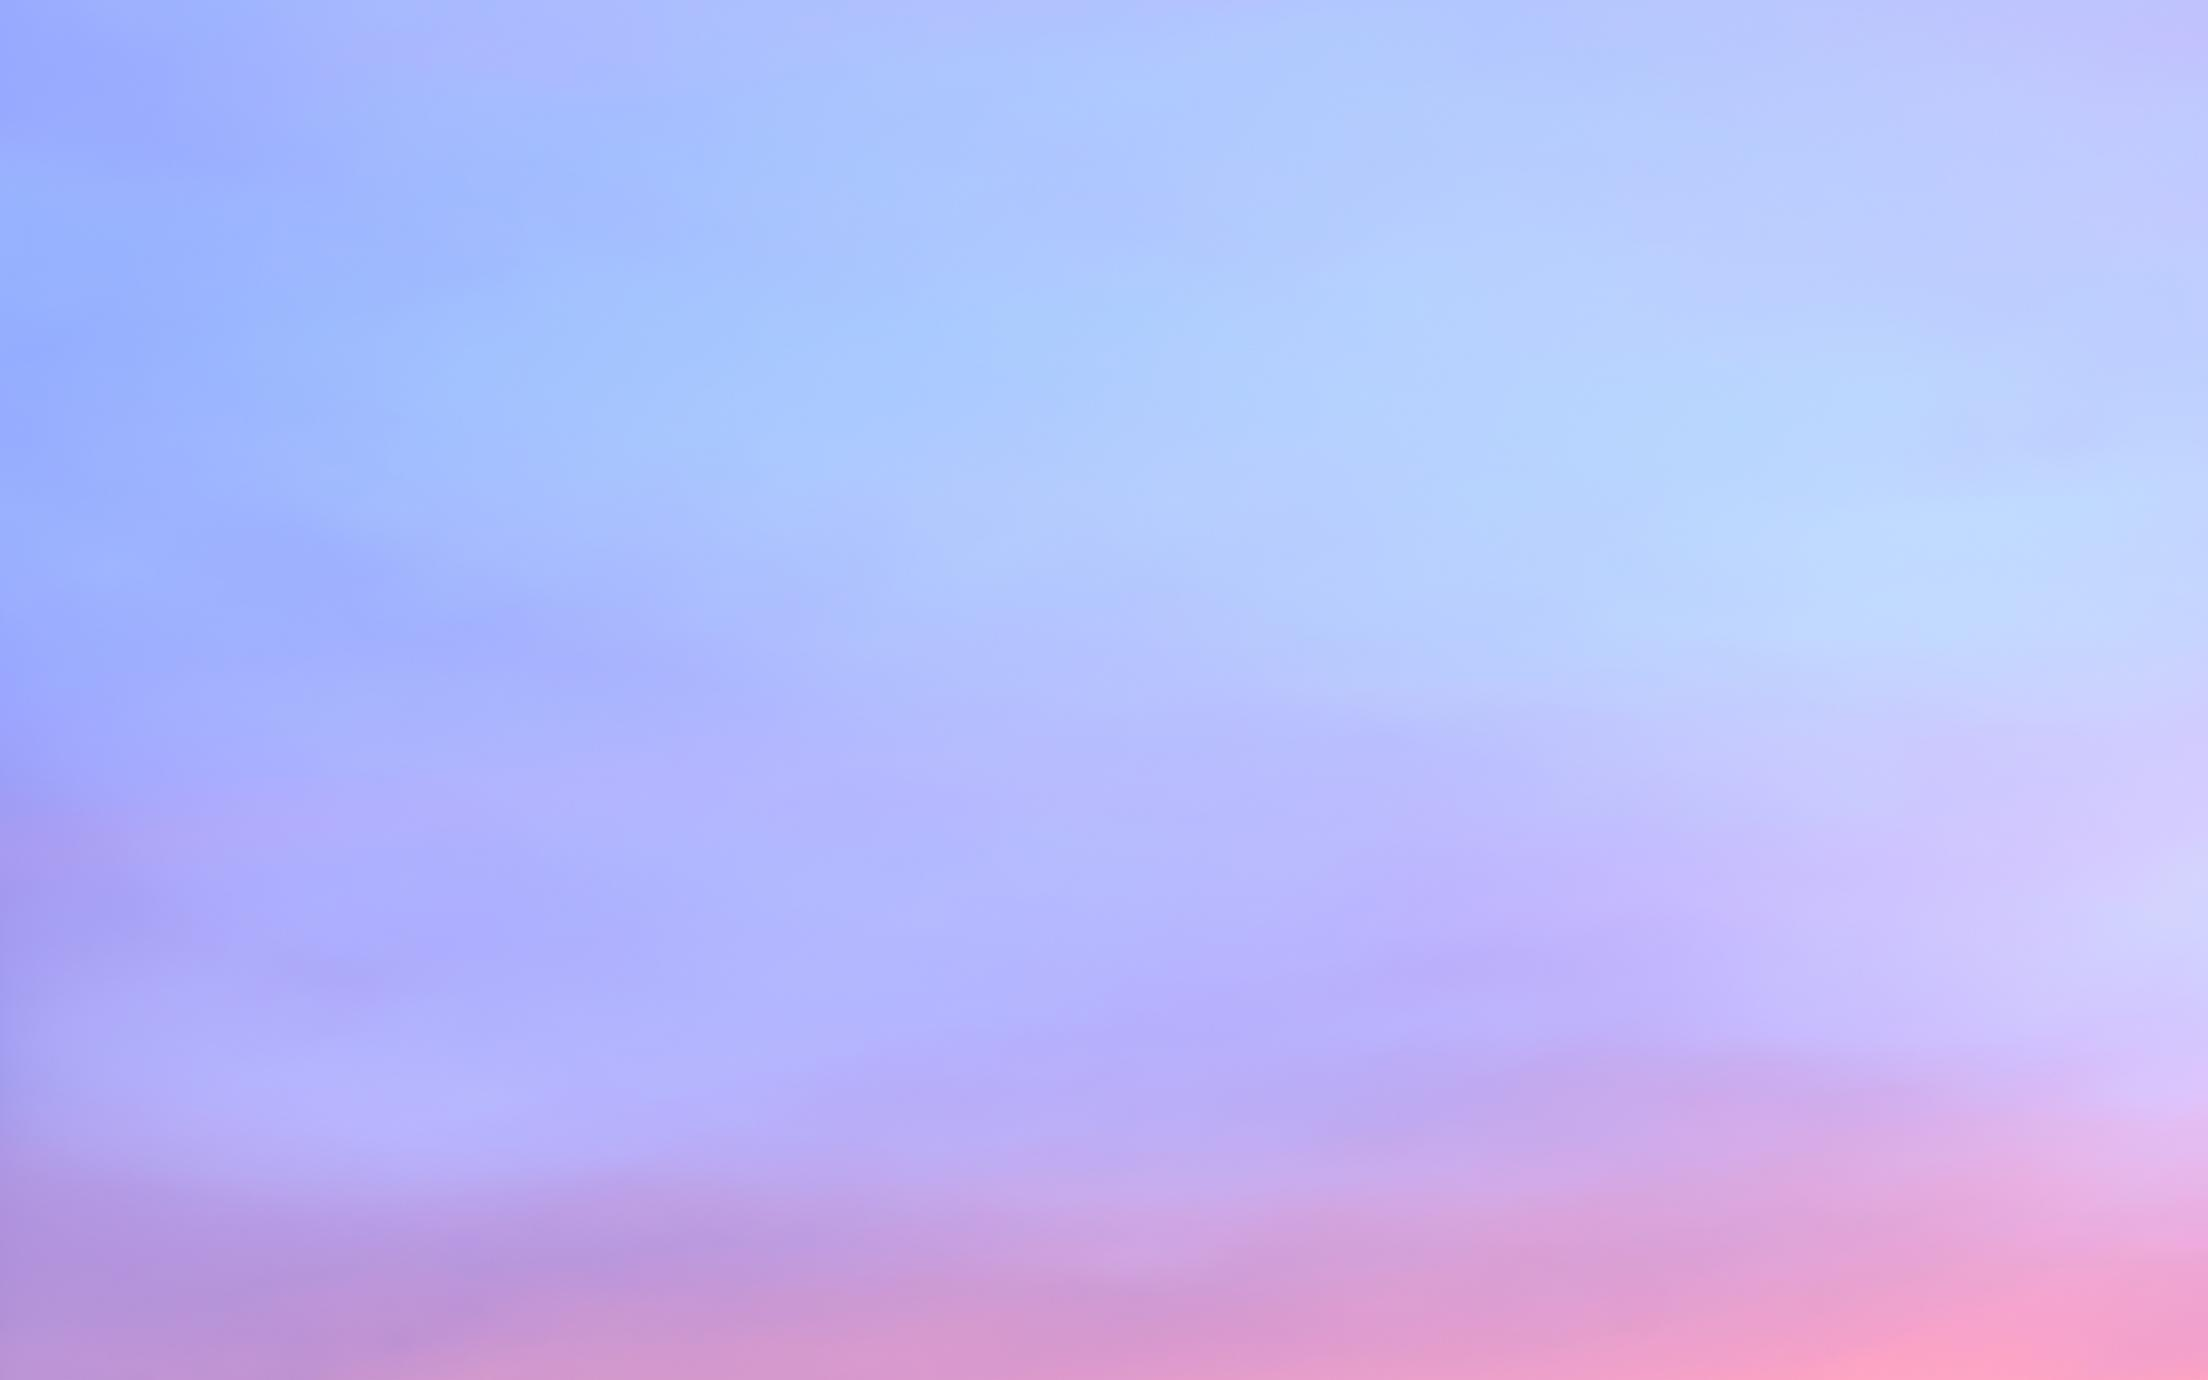 image of a sunset sky